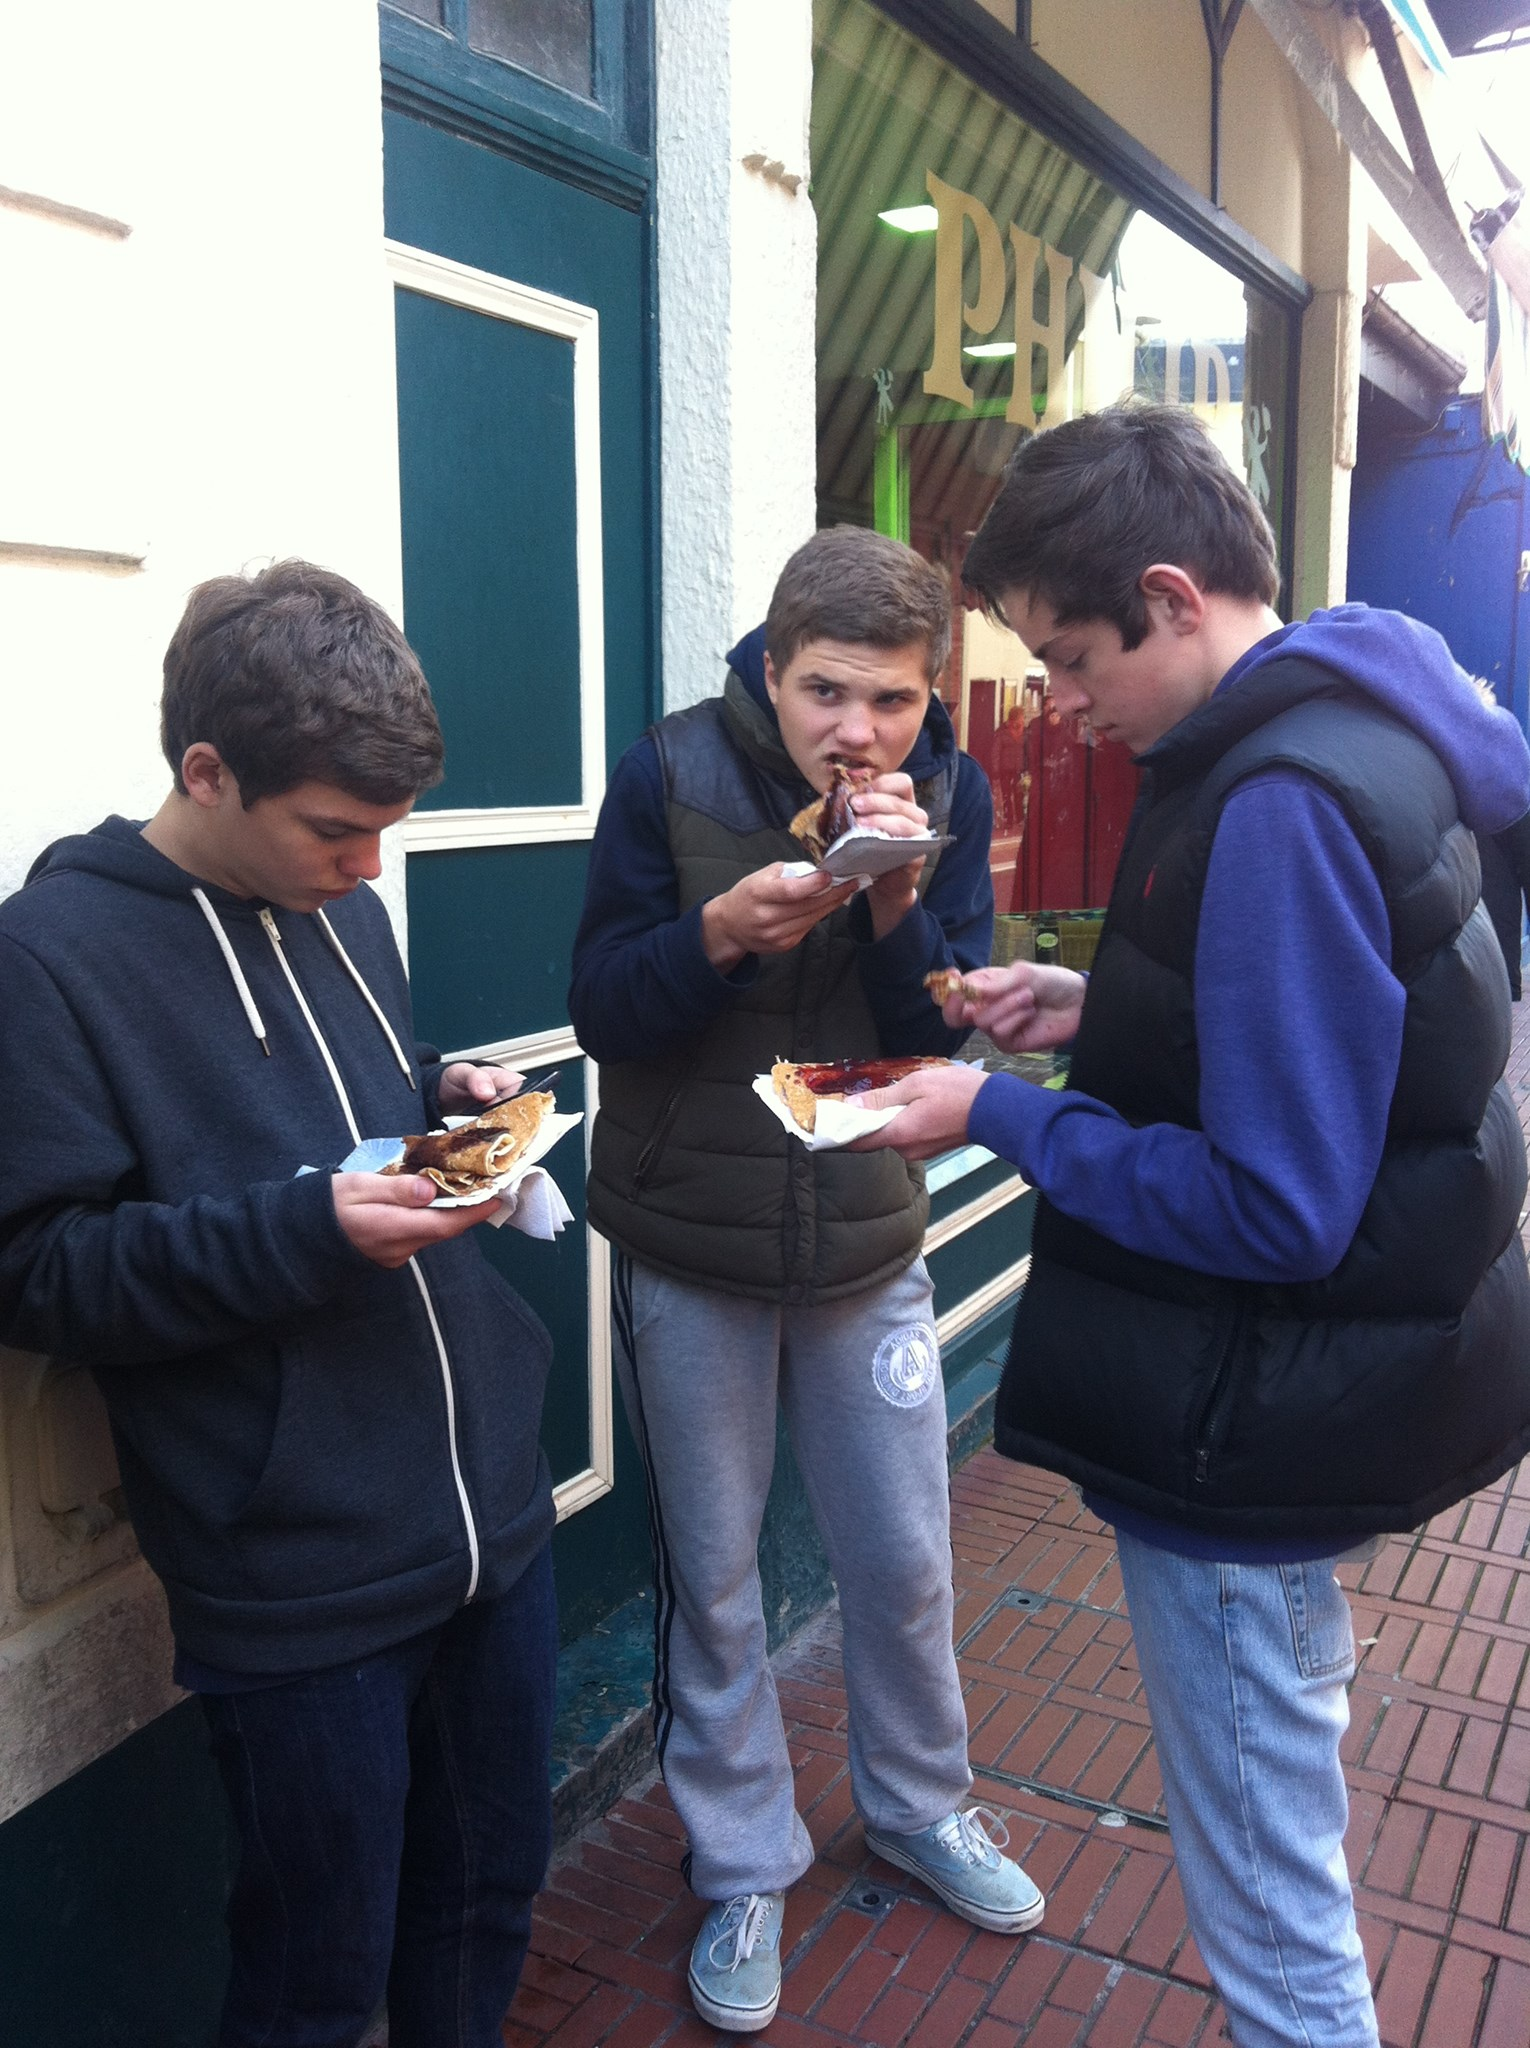 SAMPLING THE CREPE'S IN FRANCE